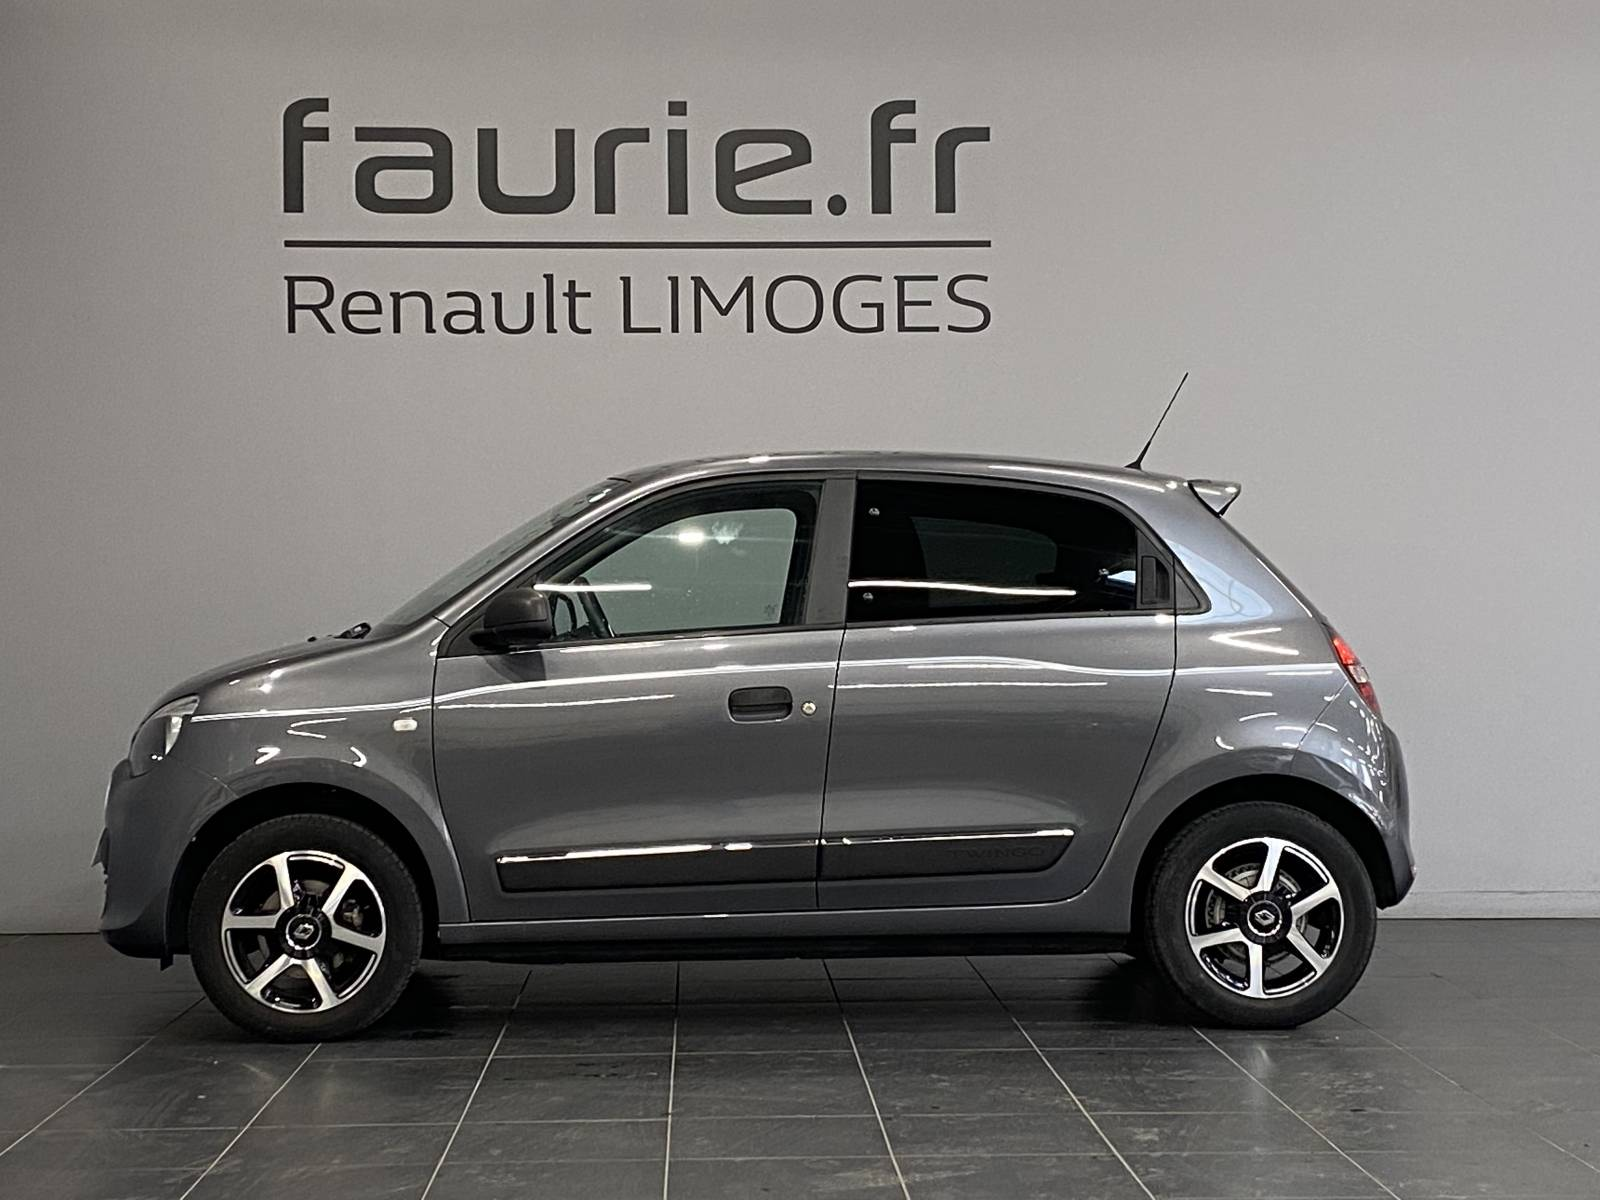 RENAULT Twingo III 0.9 TCe 90 Energy E6C - véhicule d'occasion - Site Internet Faurie - Renault - Faurie Auto Limoges - 87000 - Limoges - 4